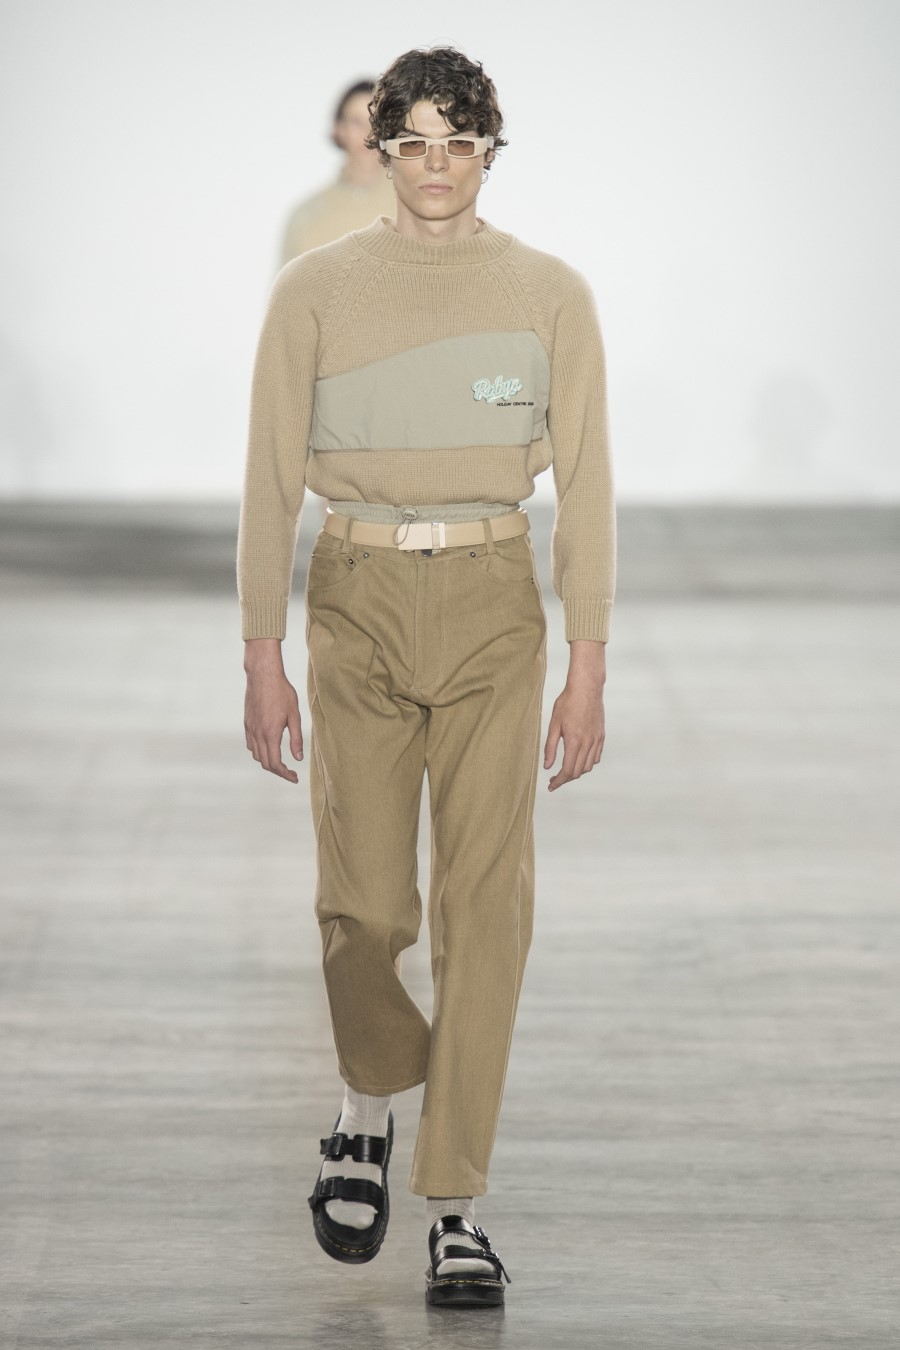 Fashion East - Robyn Lynch - Printemps-Été 2020 - London Fashion Week Men's